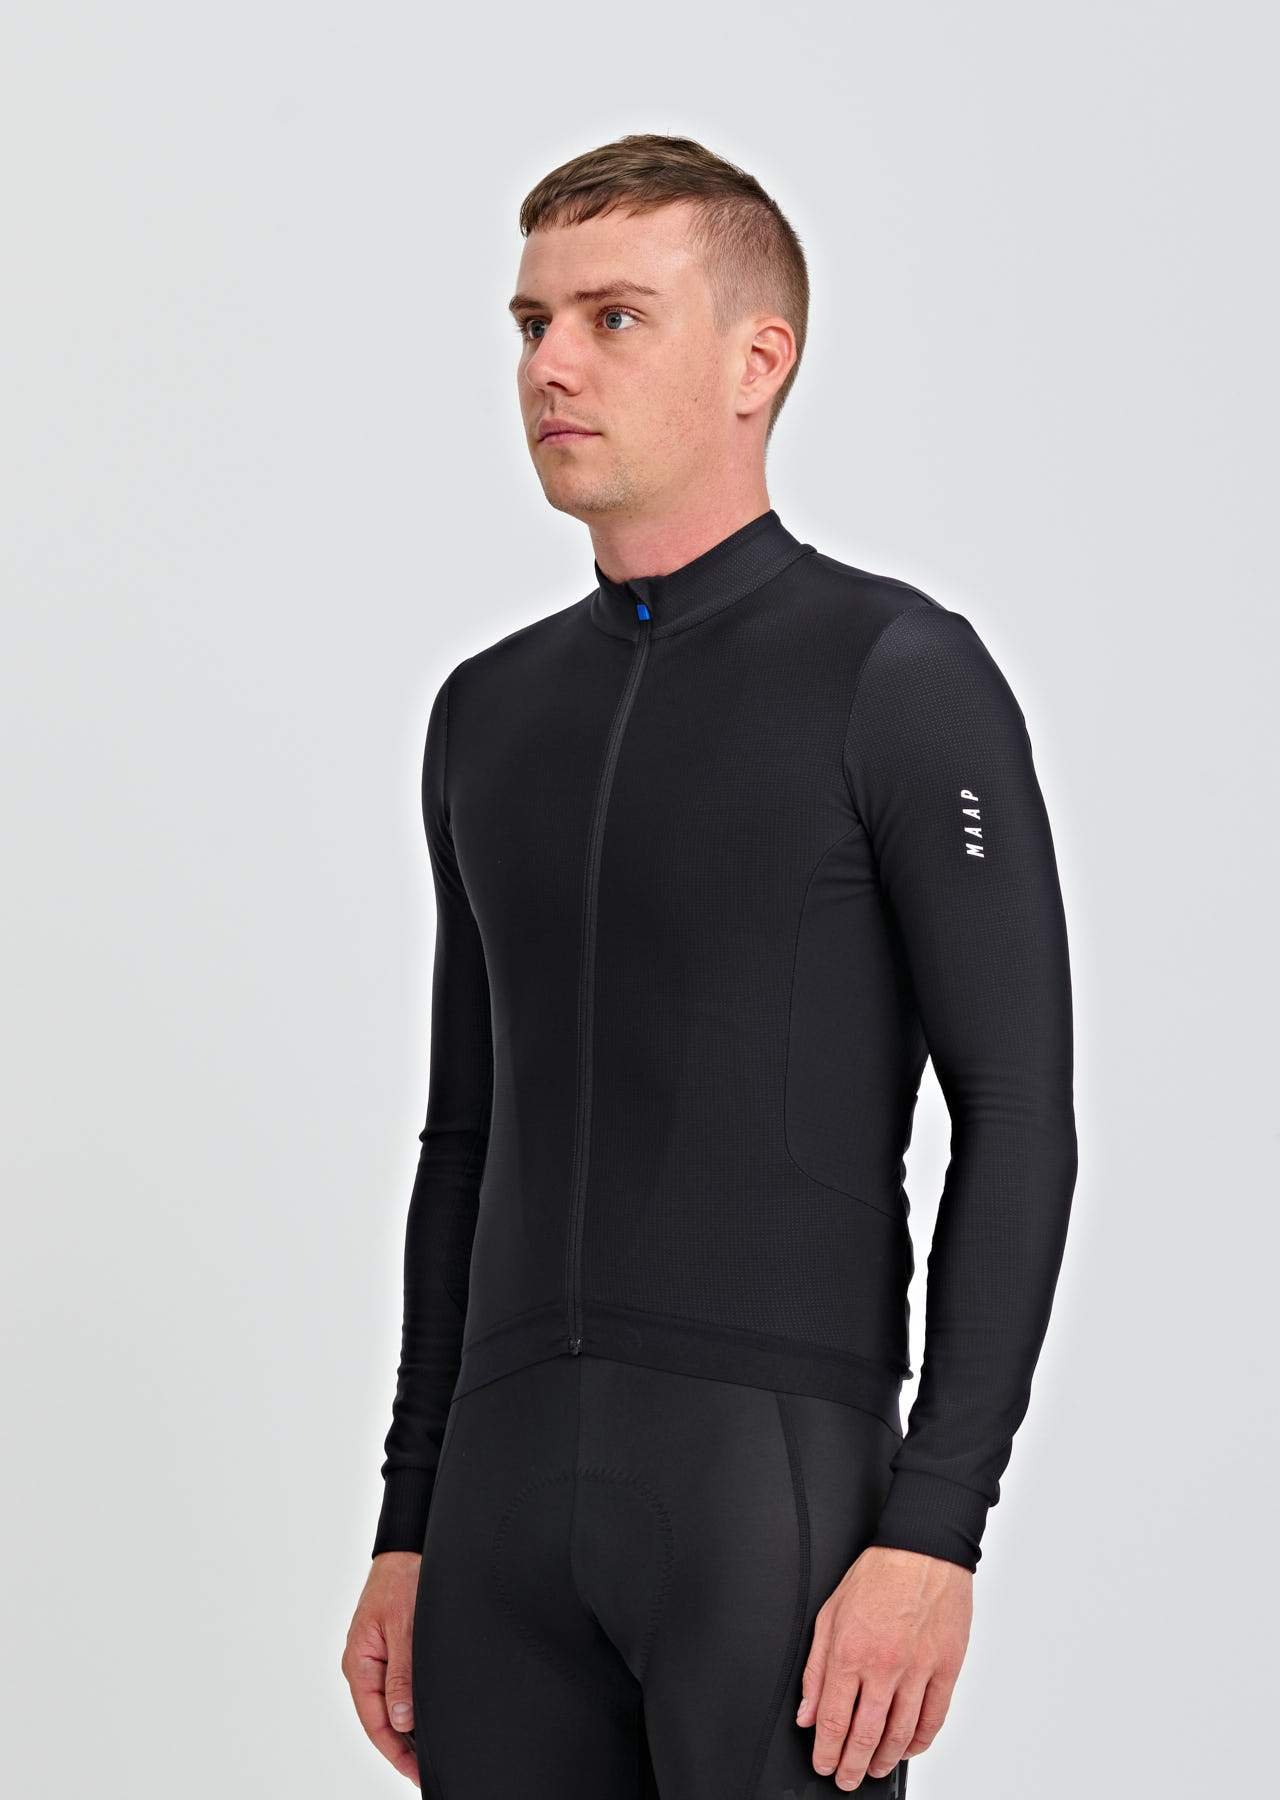 Force Pro LS Jersey - Black Cycling Jersey MAAP